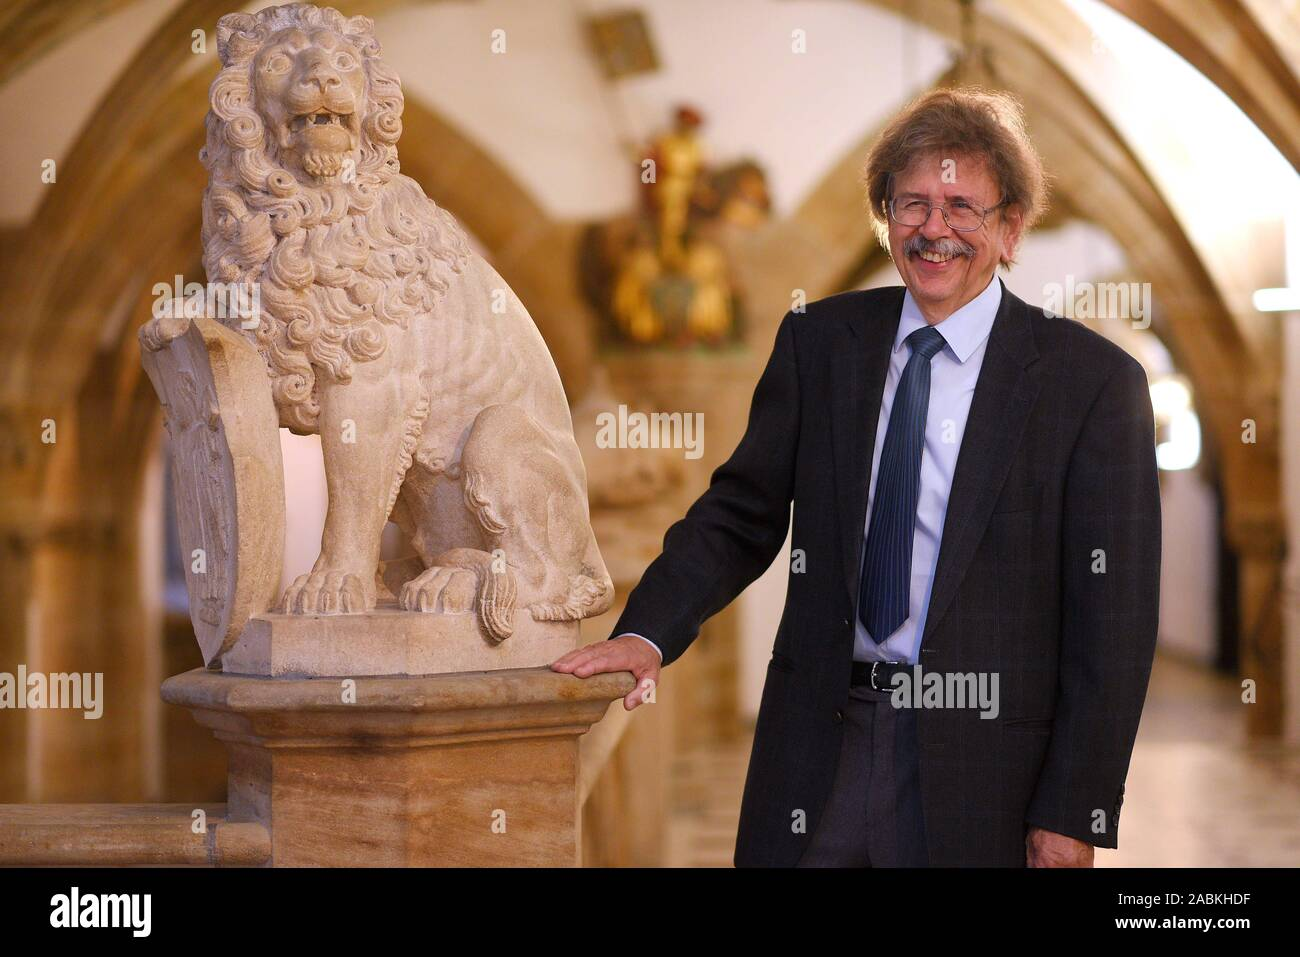 """Professor Dr. Reinhard Roos, Chief Physician of the Clinic for Paediatrics and Youth Medicine at Harlaching Hospital, has been awarded the medal """"Munich shines - The friends of Munich"""". The picture shows him in Munich City Hall. [automated translation] Stock Photo"""